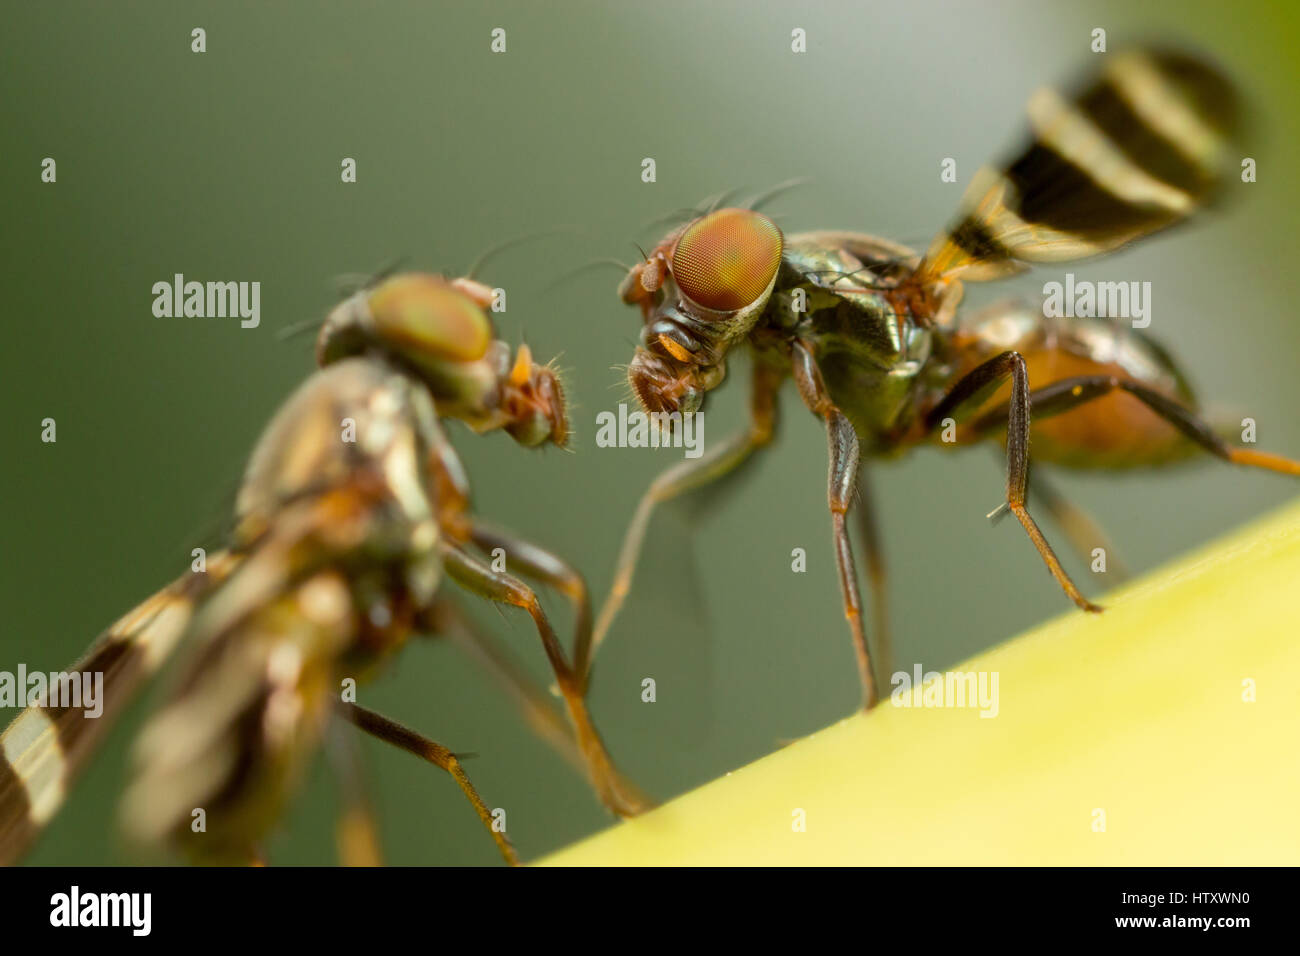 images of fruit flies.html